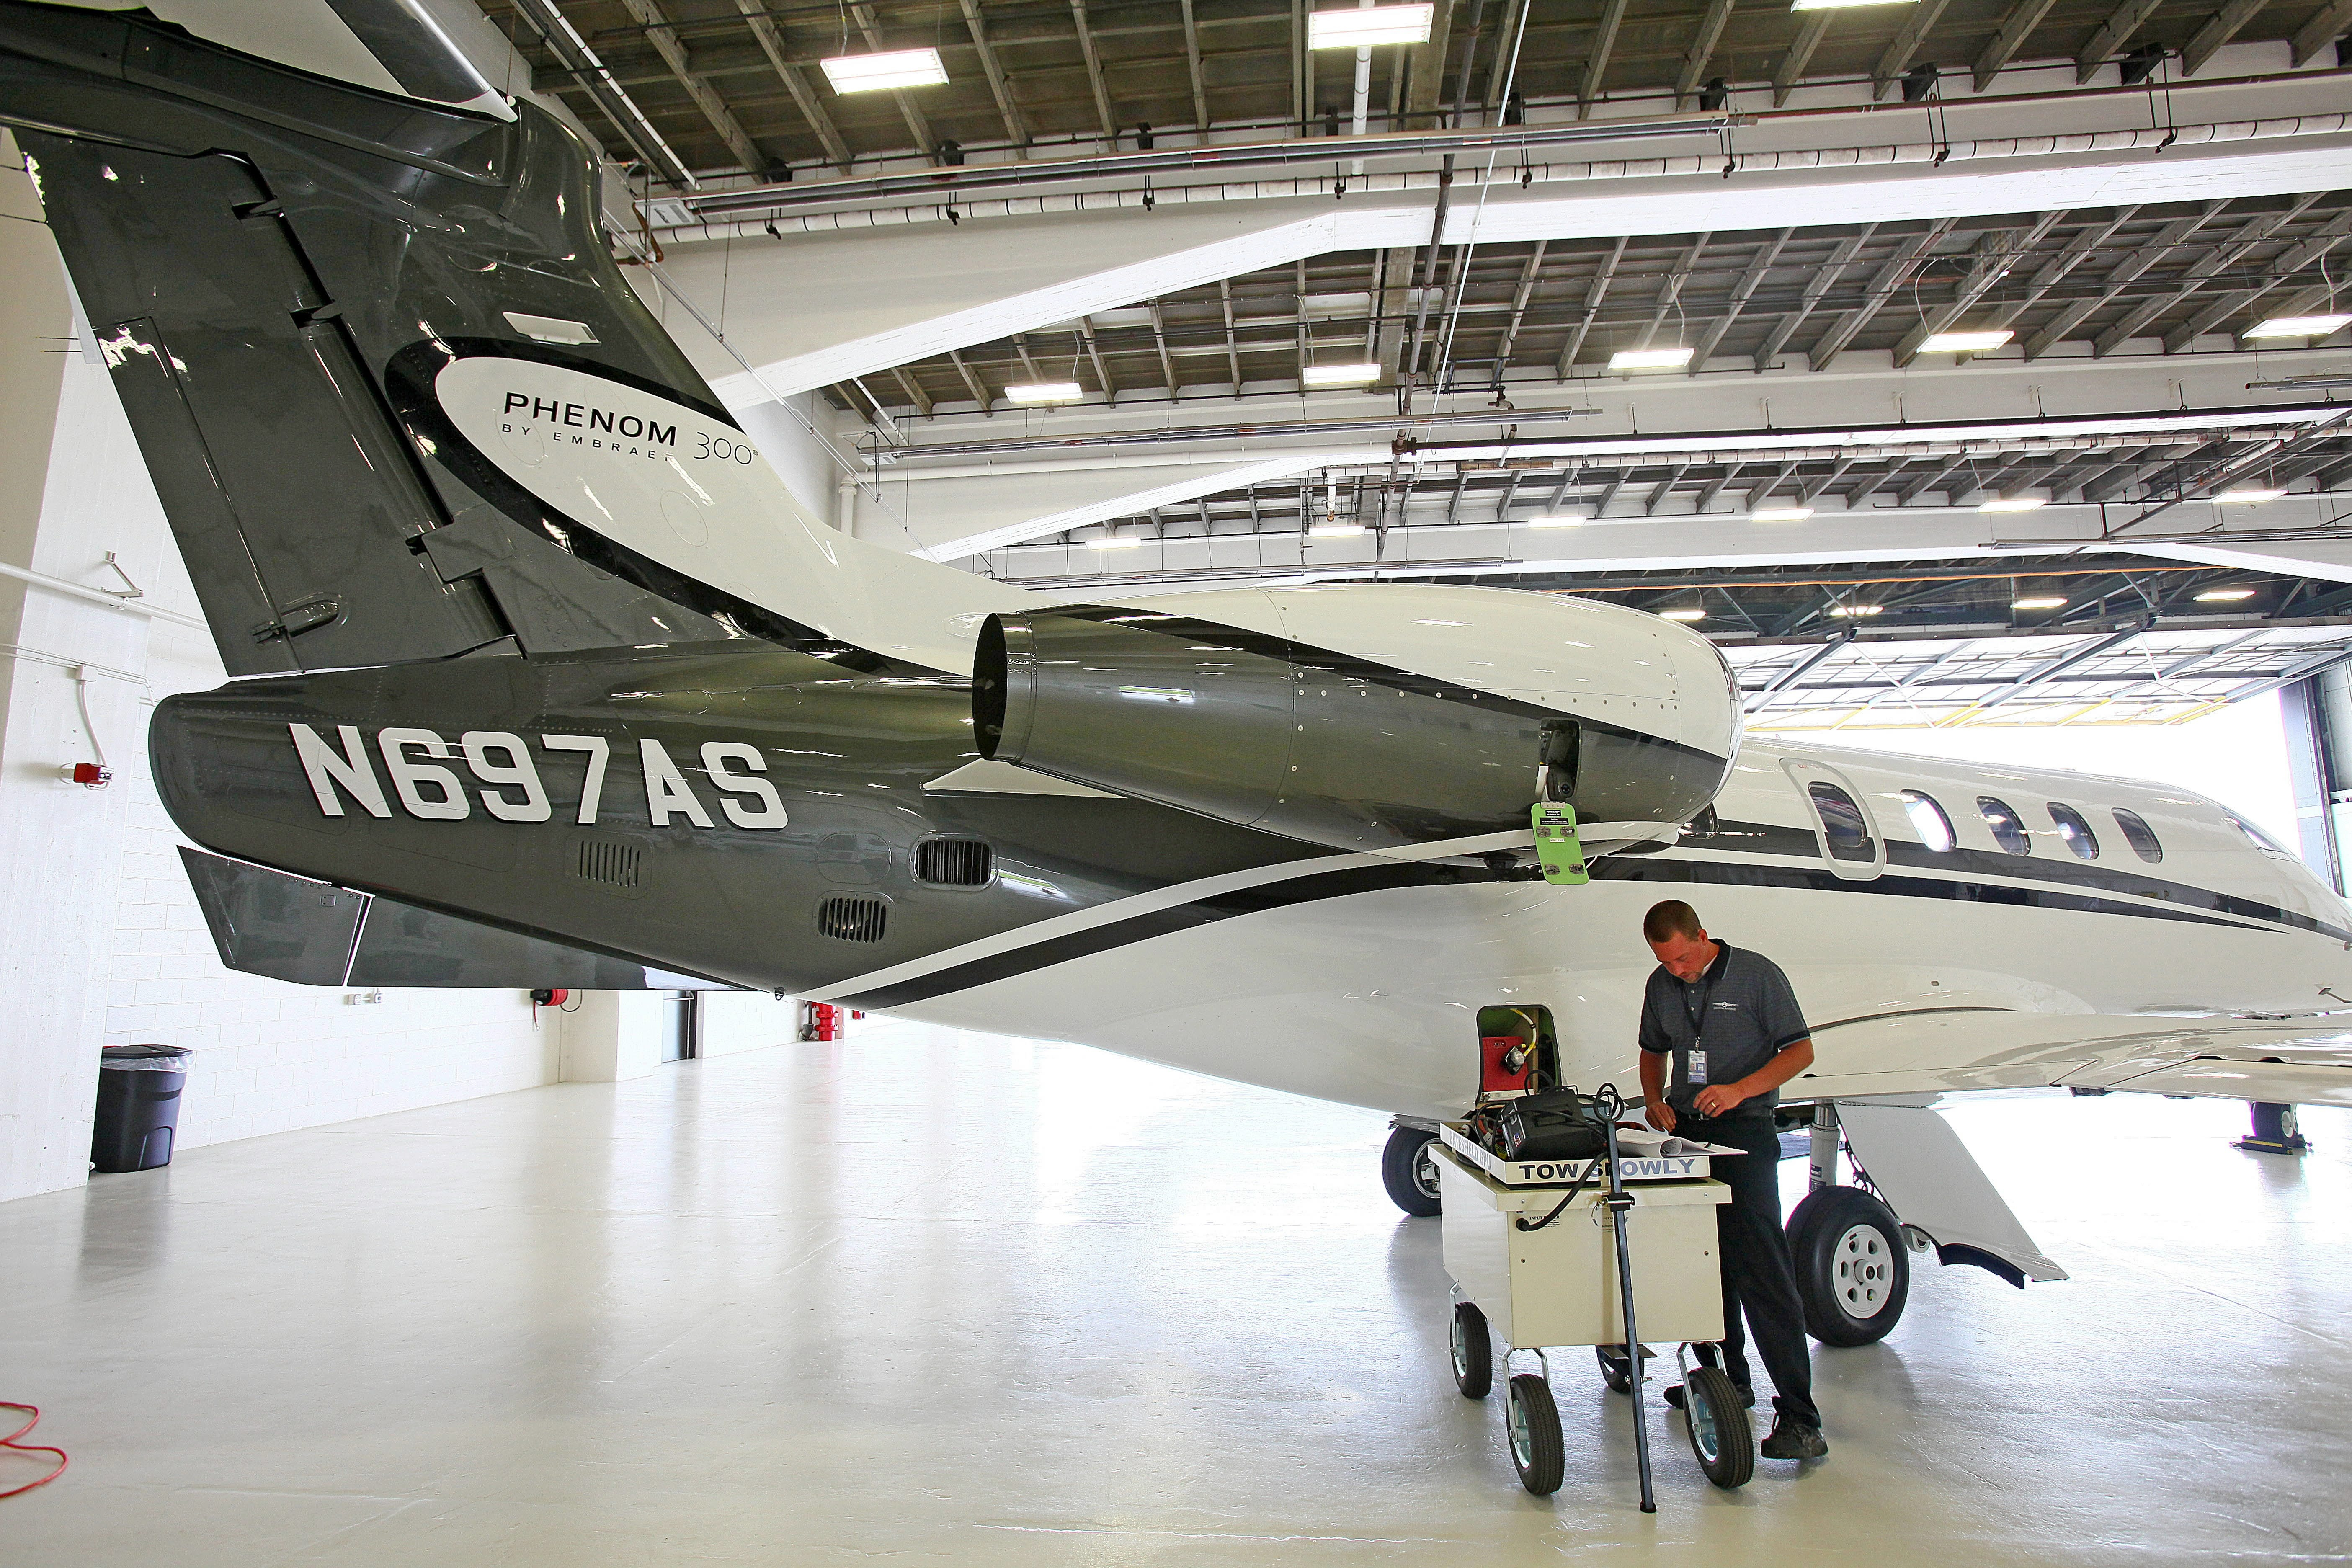 A maintenance technician does a daily routine check up on a jet at the Executive AirShare hangar The company just signed a 10-year lease at the Buffalo Niagara International Airport.   {Robert Kirkham / Buffalo News file photo}